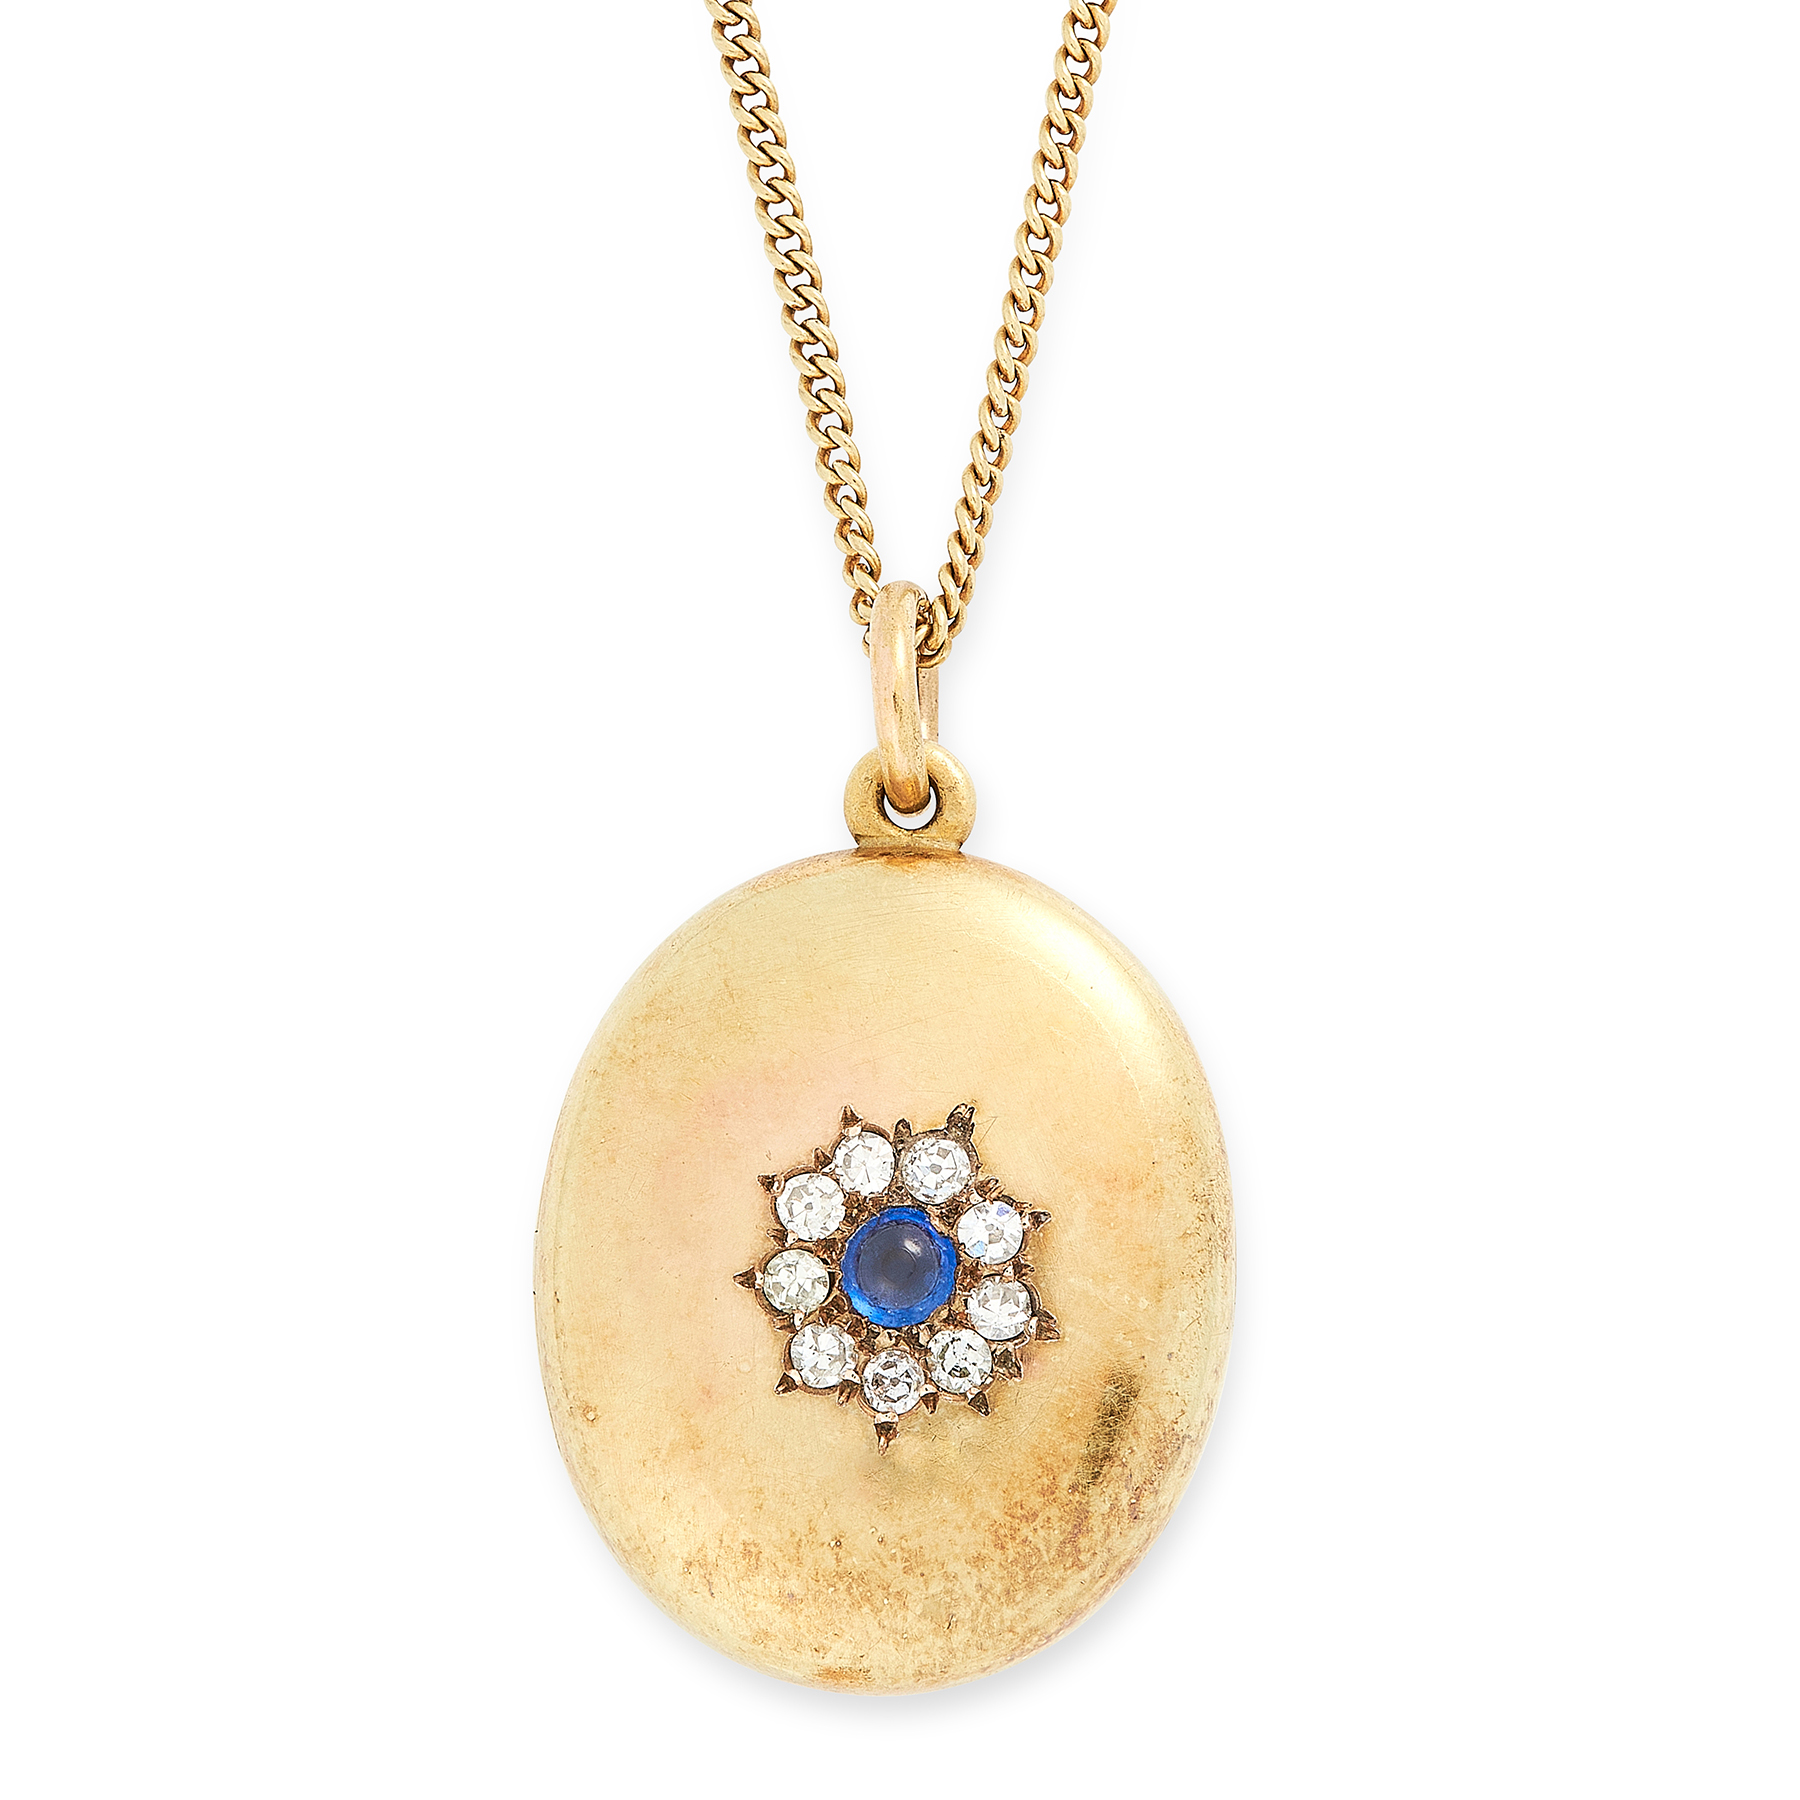 AN ANTIQUE SAPPHIRE AND DIAMOND LOCKET PENDANT AND CHAIN in high carat yellow gold, the oval